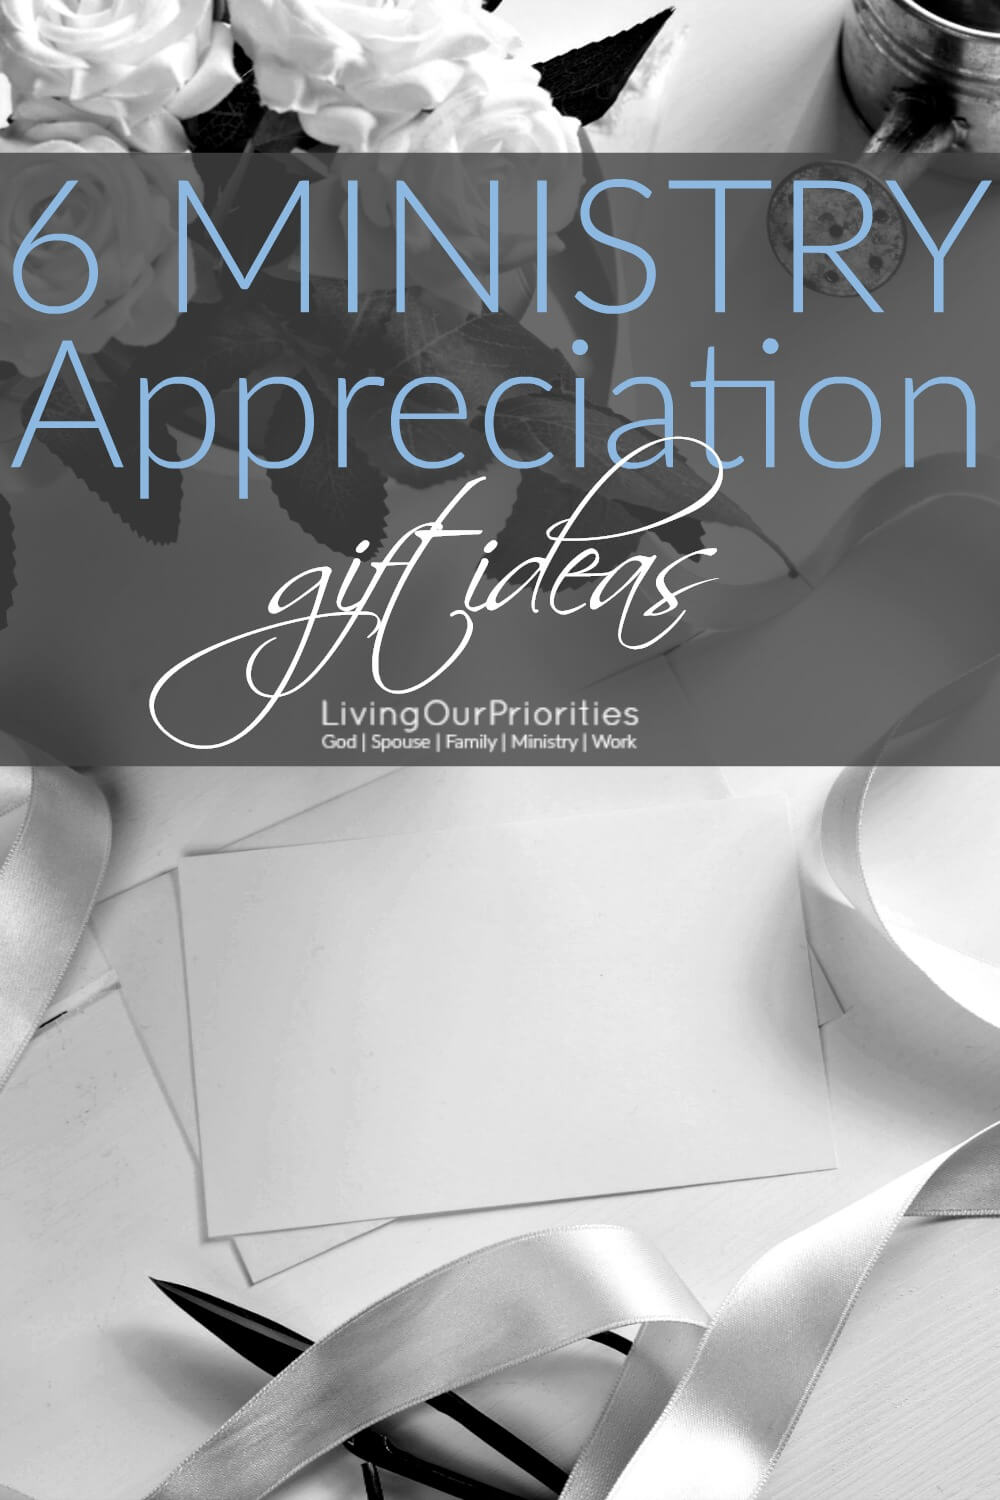 Want to honor those in ministry? Here are 6 ministry appreciation gift ideas! #ministryappreciation #livingourpriorities